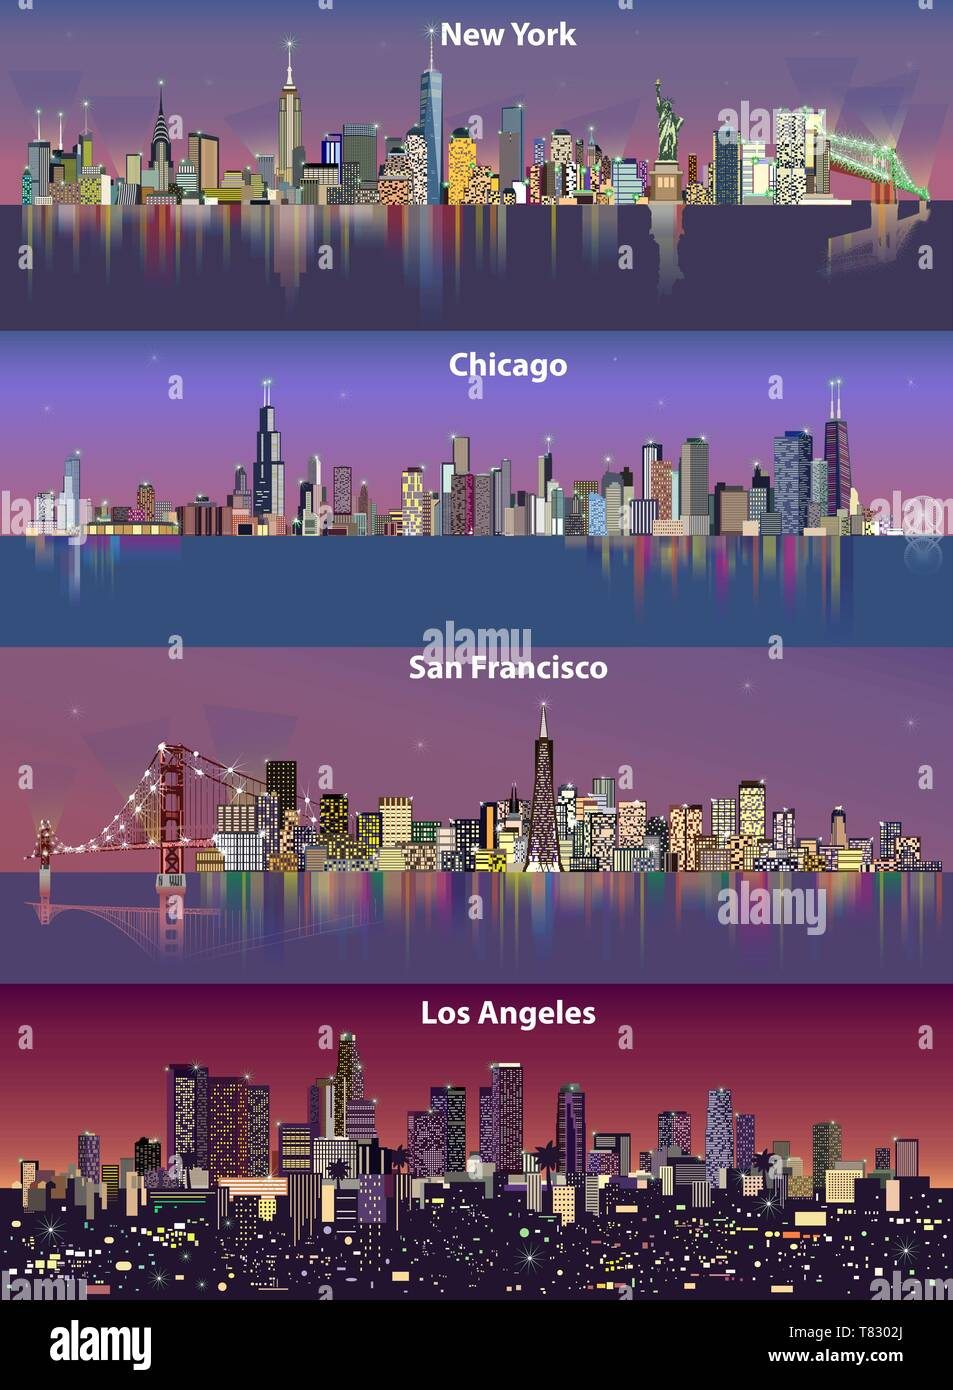 abstract vector illustrations of United States city skylines (New York, Chicago, San Francisco and Los Angeles) at night with map - Stock Vector